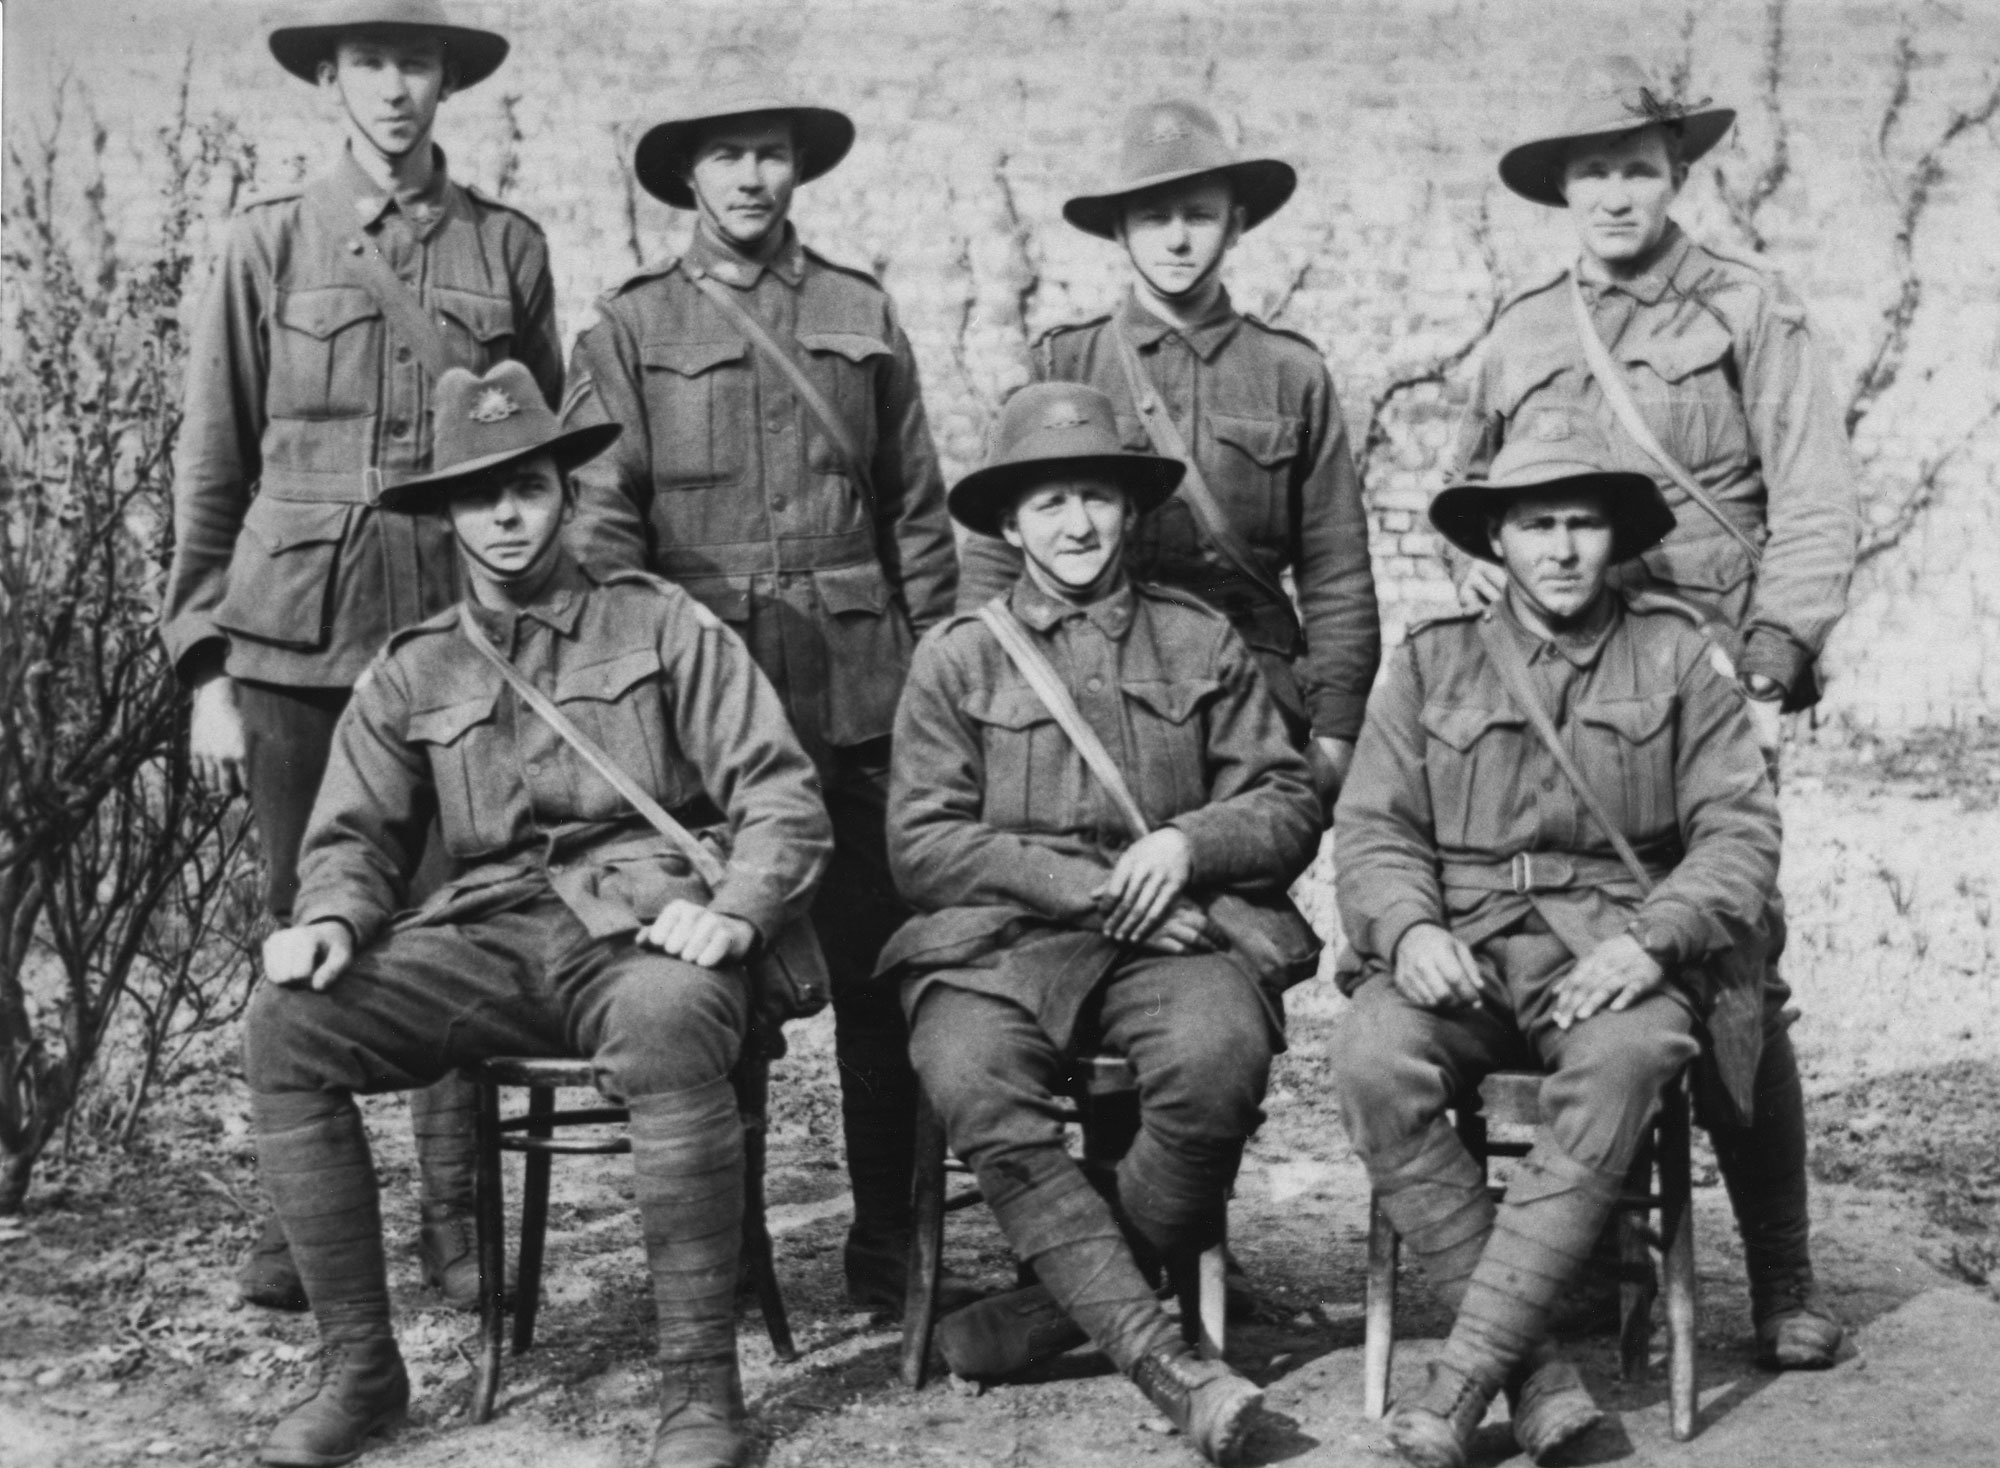 Australian soldiers World War One